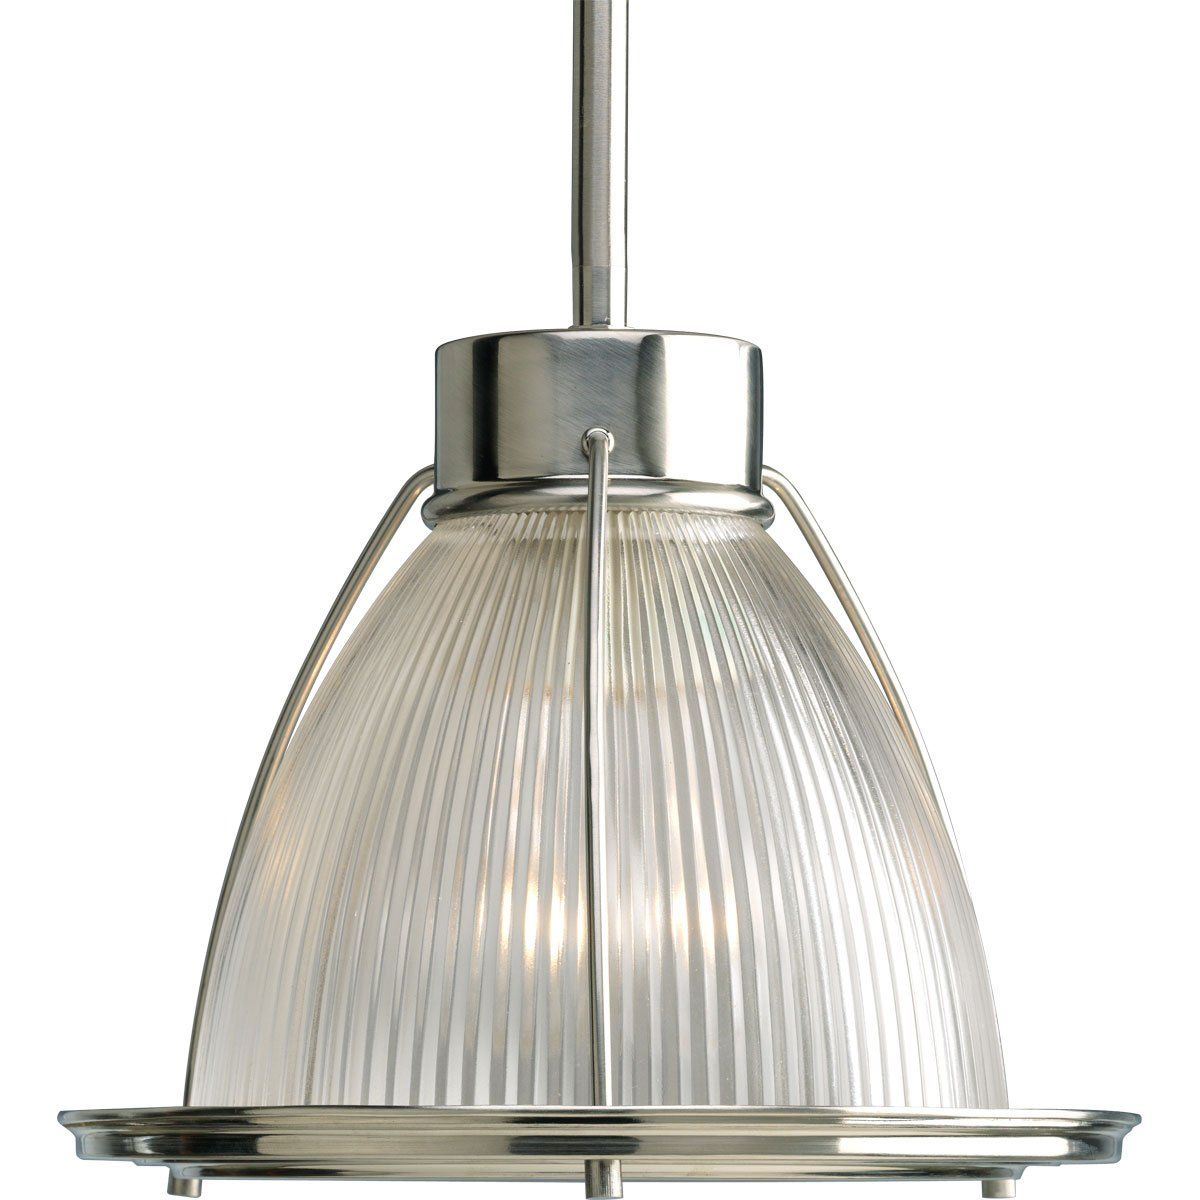 lighting pendants glass. Progress Lighting P5163-09 1-Light Stem Hung Mini-Pendant With Clear  Prismatic Glass, Brushed Nickel - Ceiling Pendant Fixtures Amazon.com Lighting Pendants Glass